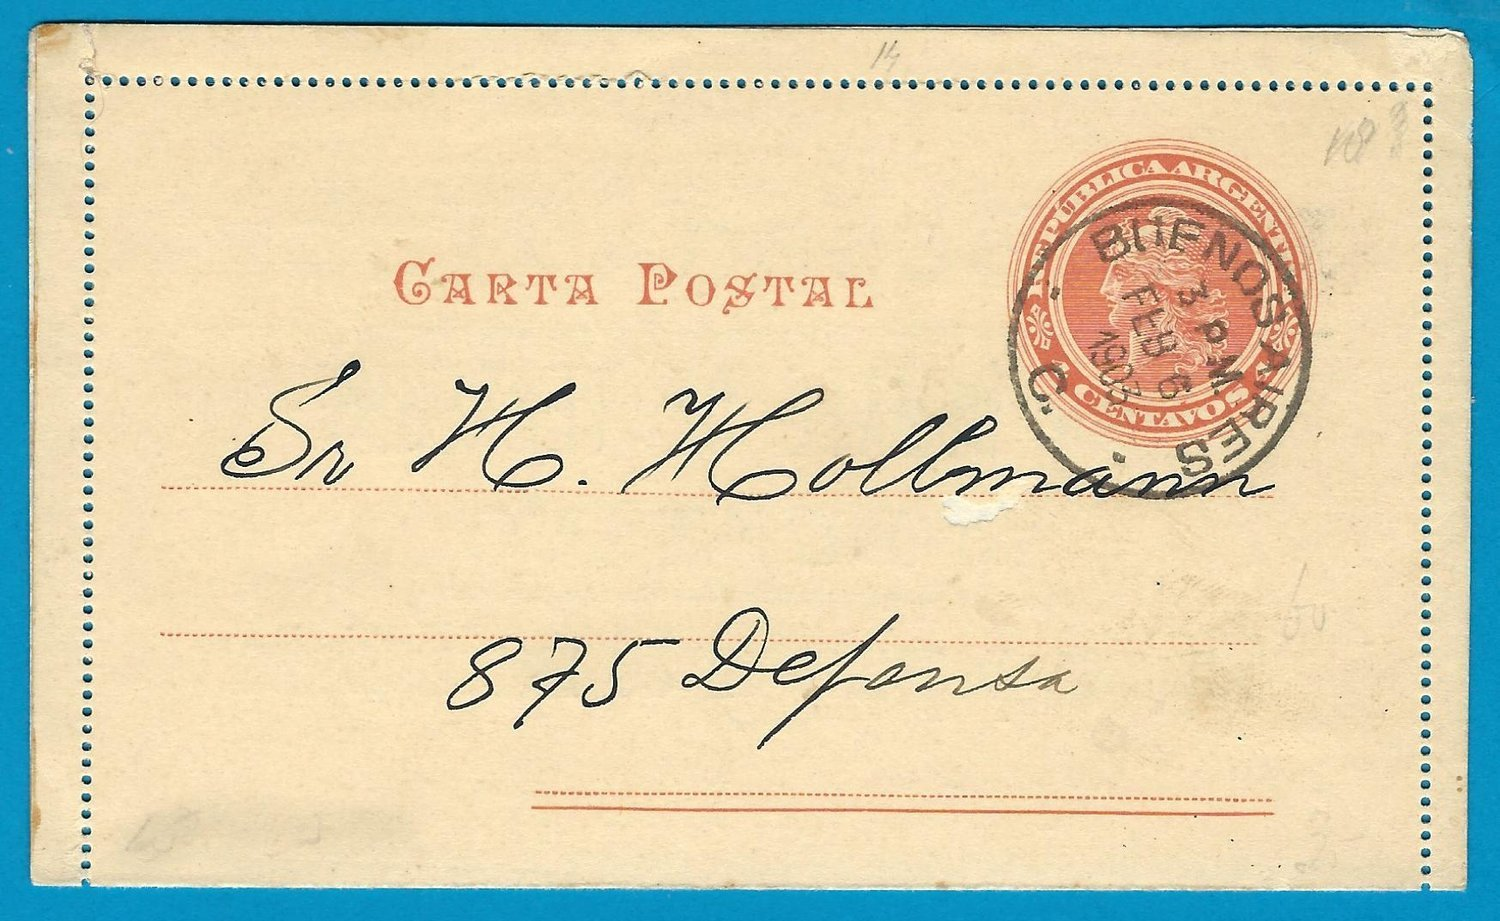 ARGENTINA postal card 1903 BA  with advertisement